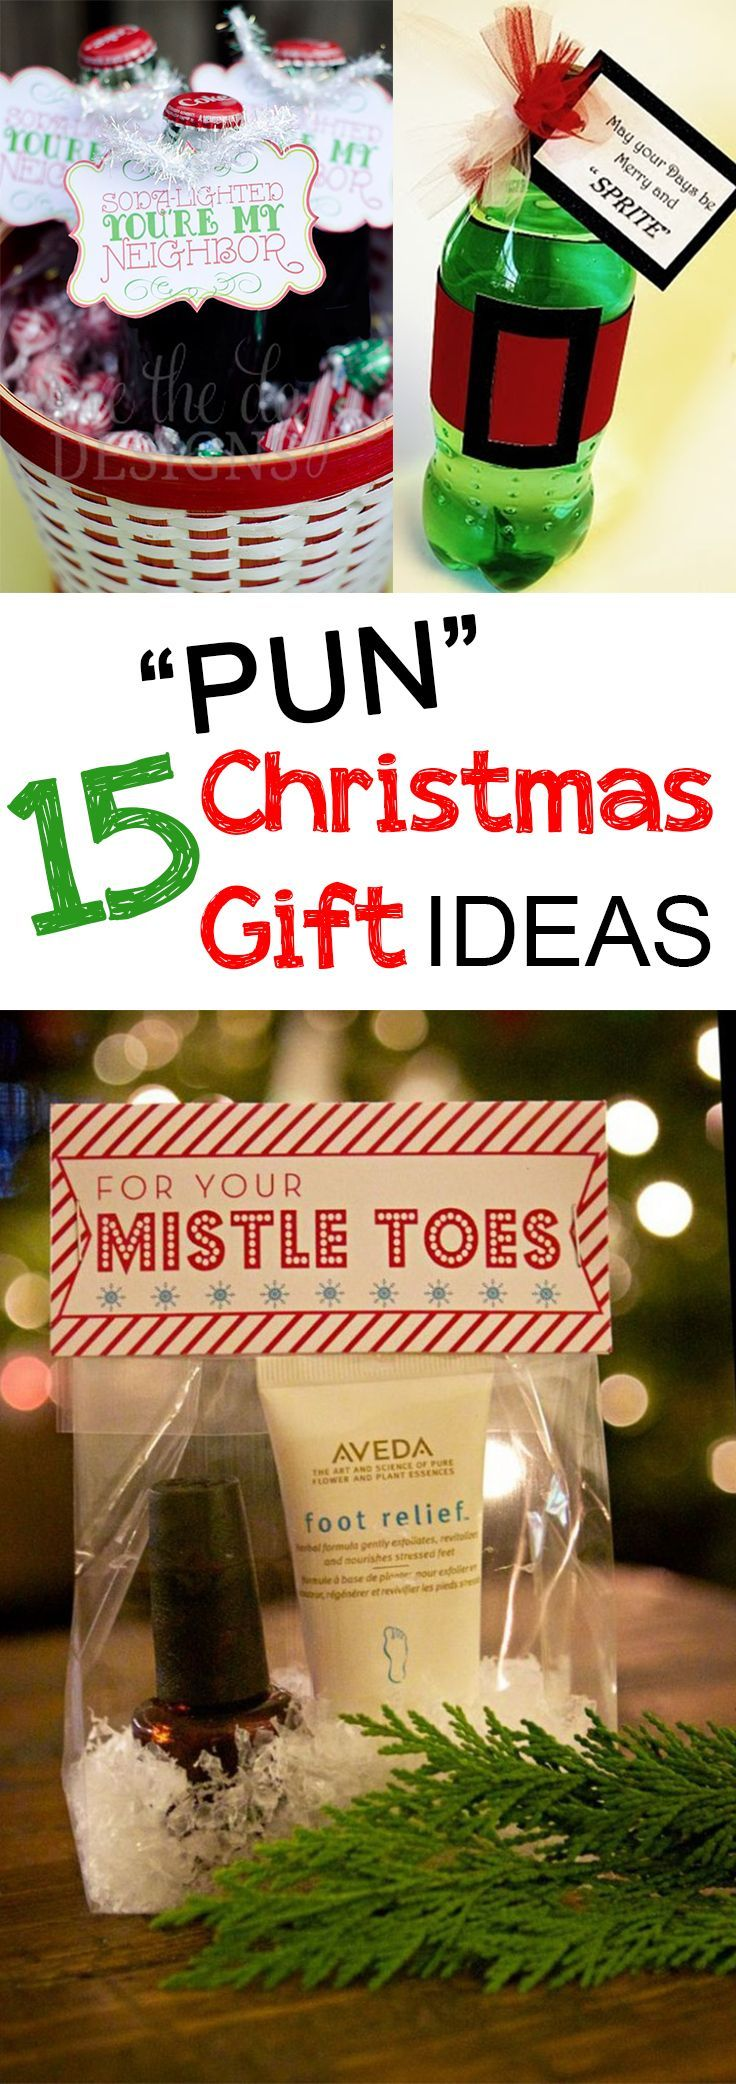 90 best play on words gift ideas images on pinterest gift ideas 15 pun christmas gift ideas solutioingenieria Image collections